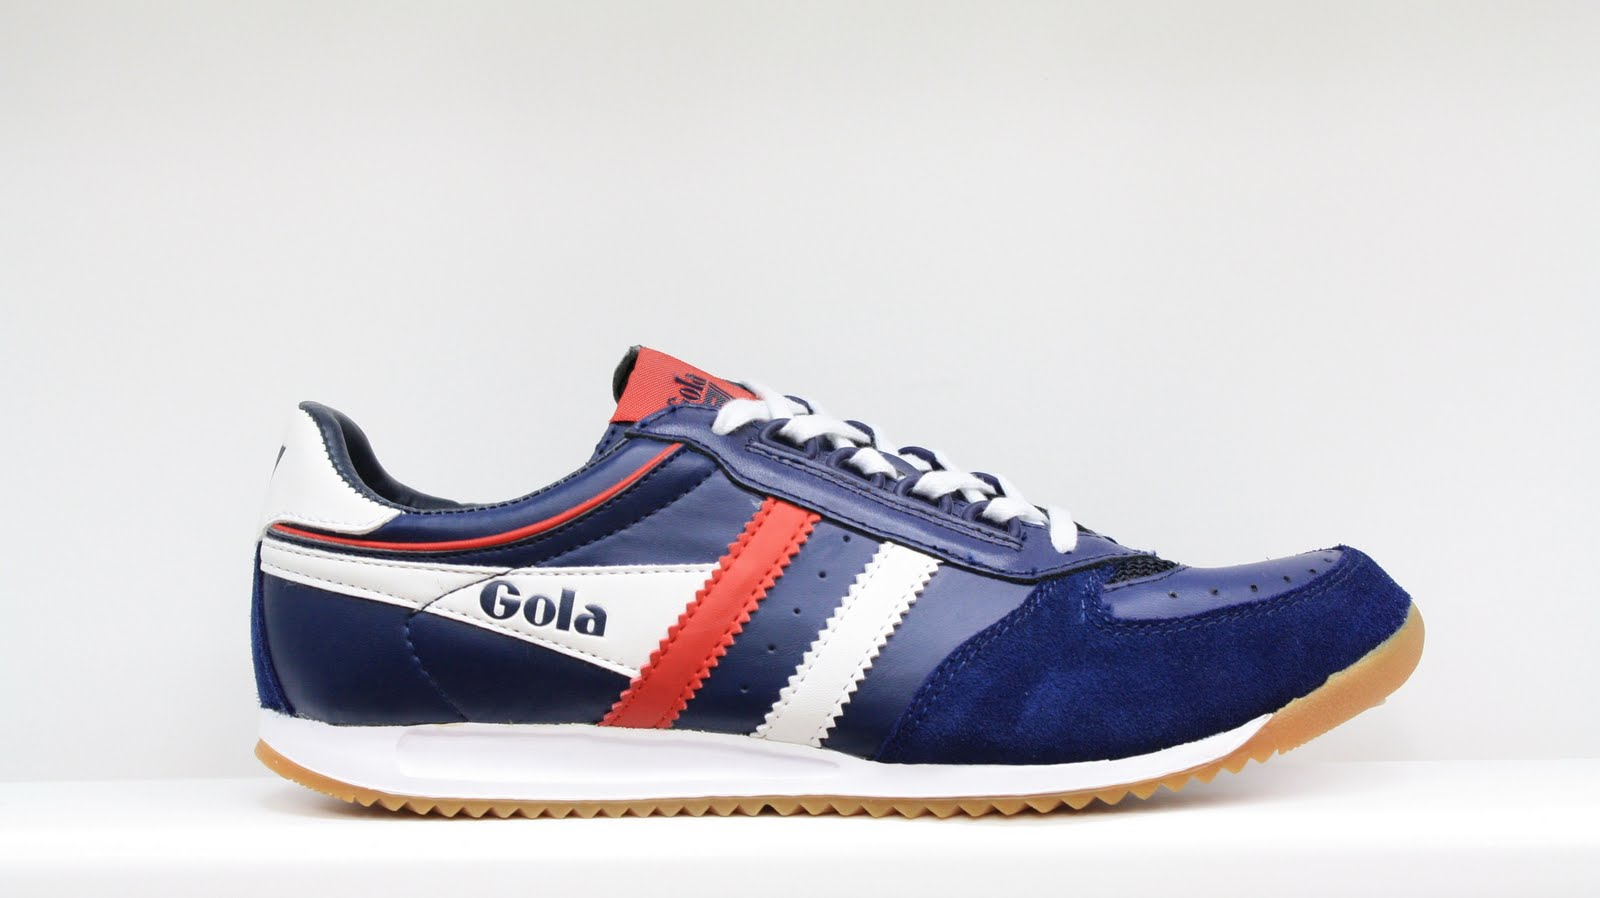 huge discount 61b61 a9208 New Gola Infinity Sneakers Available Now In DrJays Midtown Only